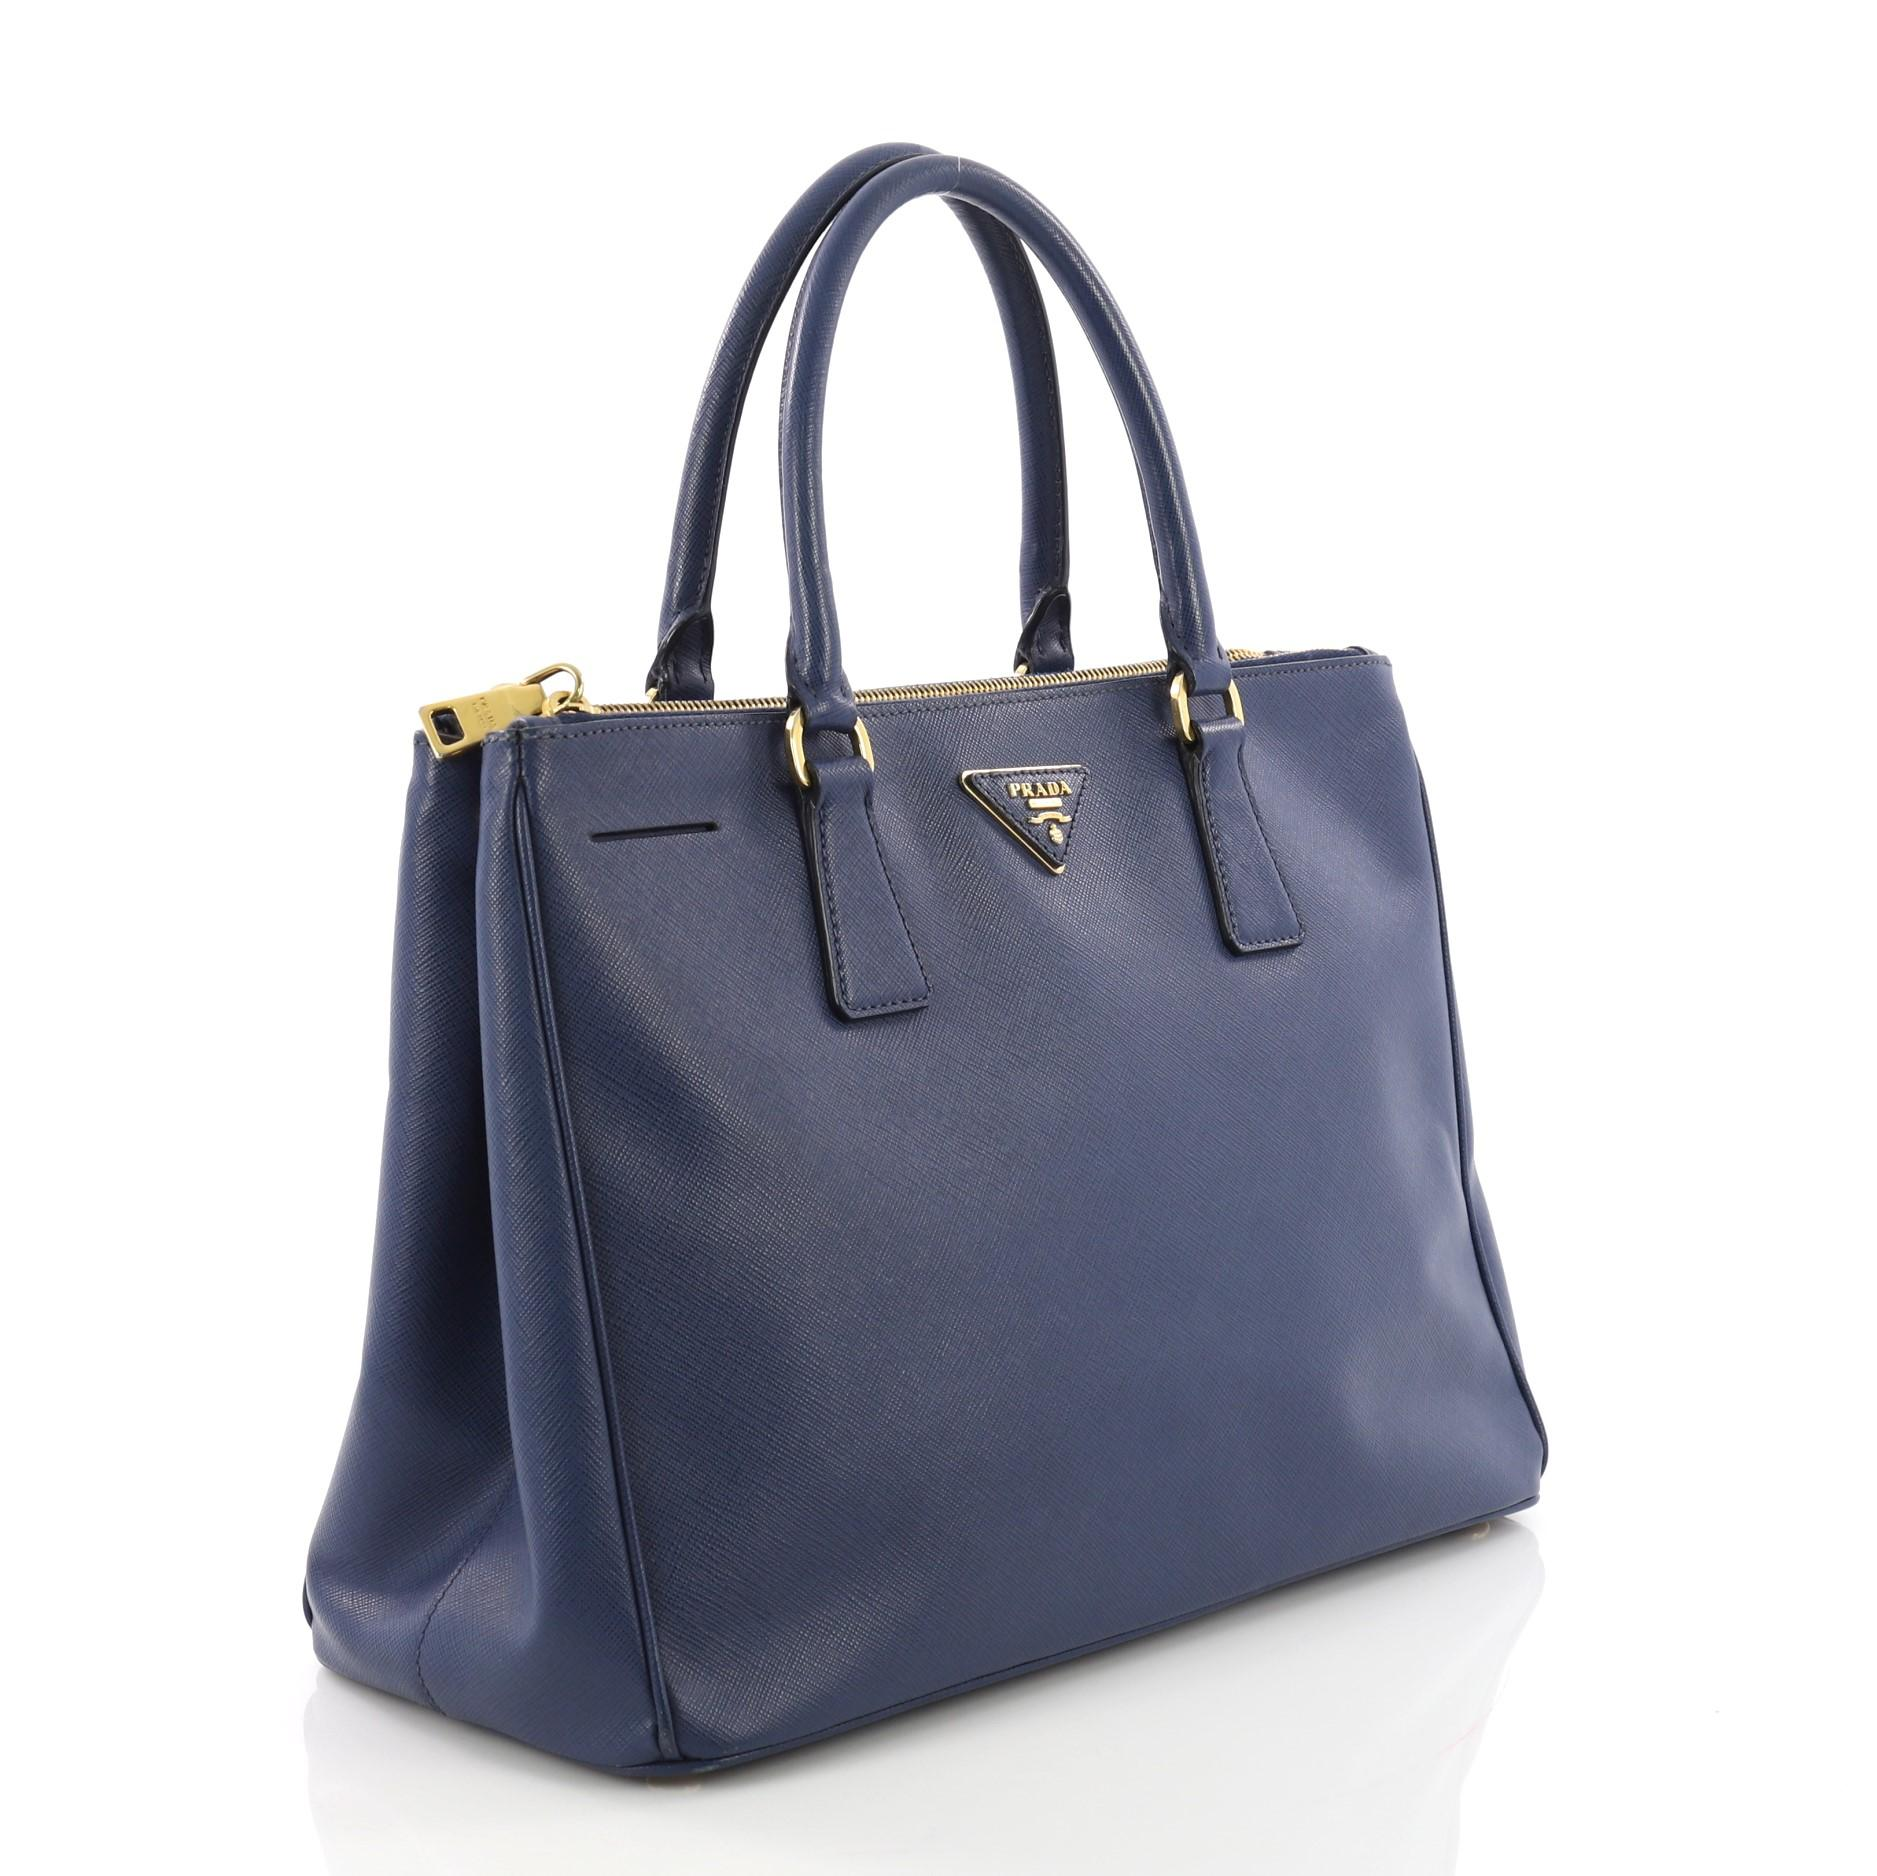 af047039882caa ... usa prada double zip lux tote saffiano leather medium for sale at  1stdibs 3f413 487c0